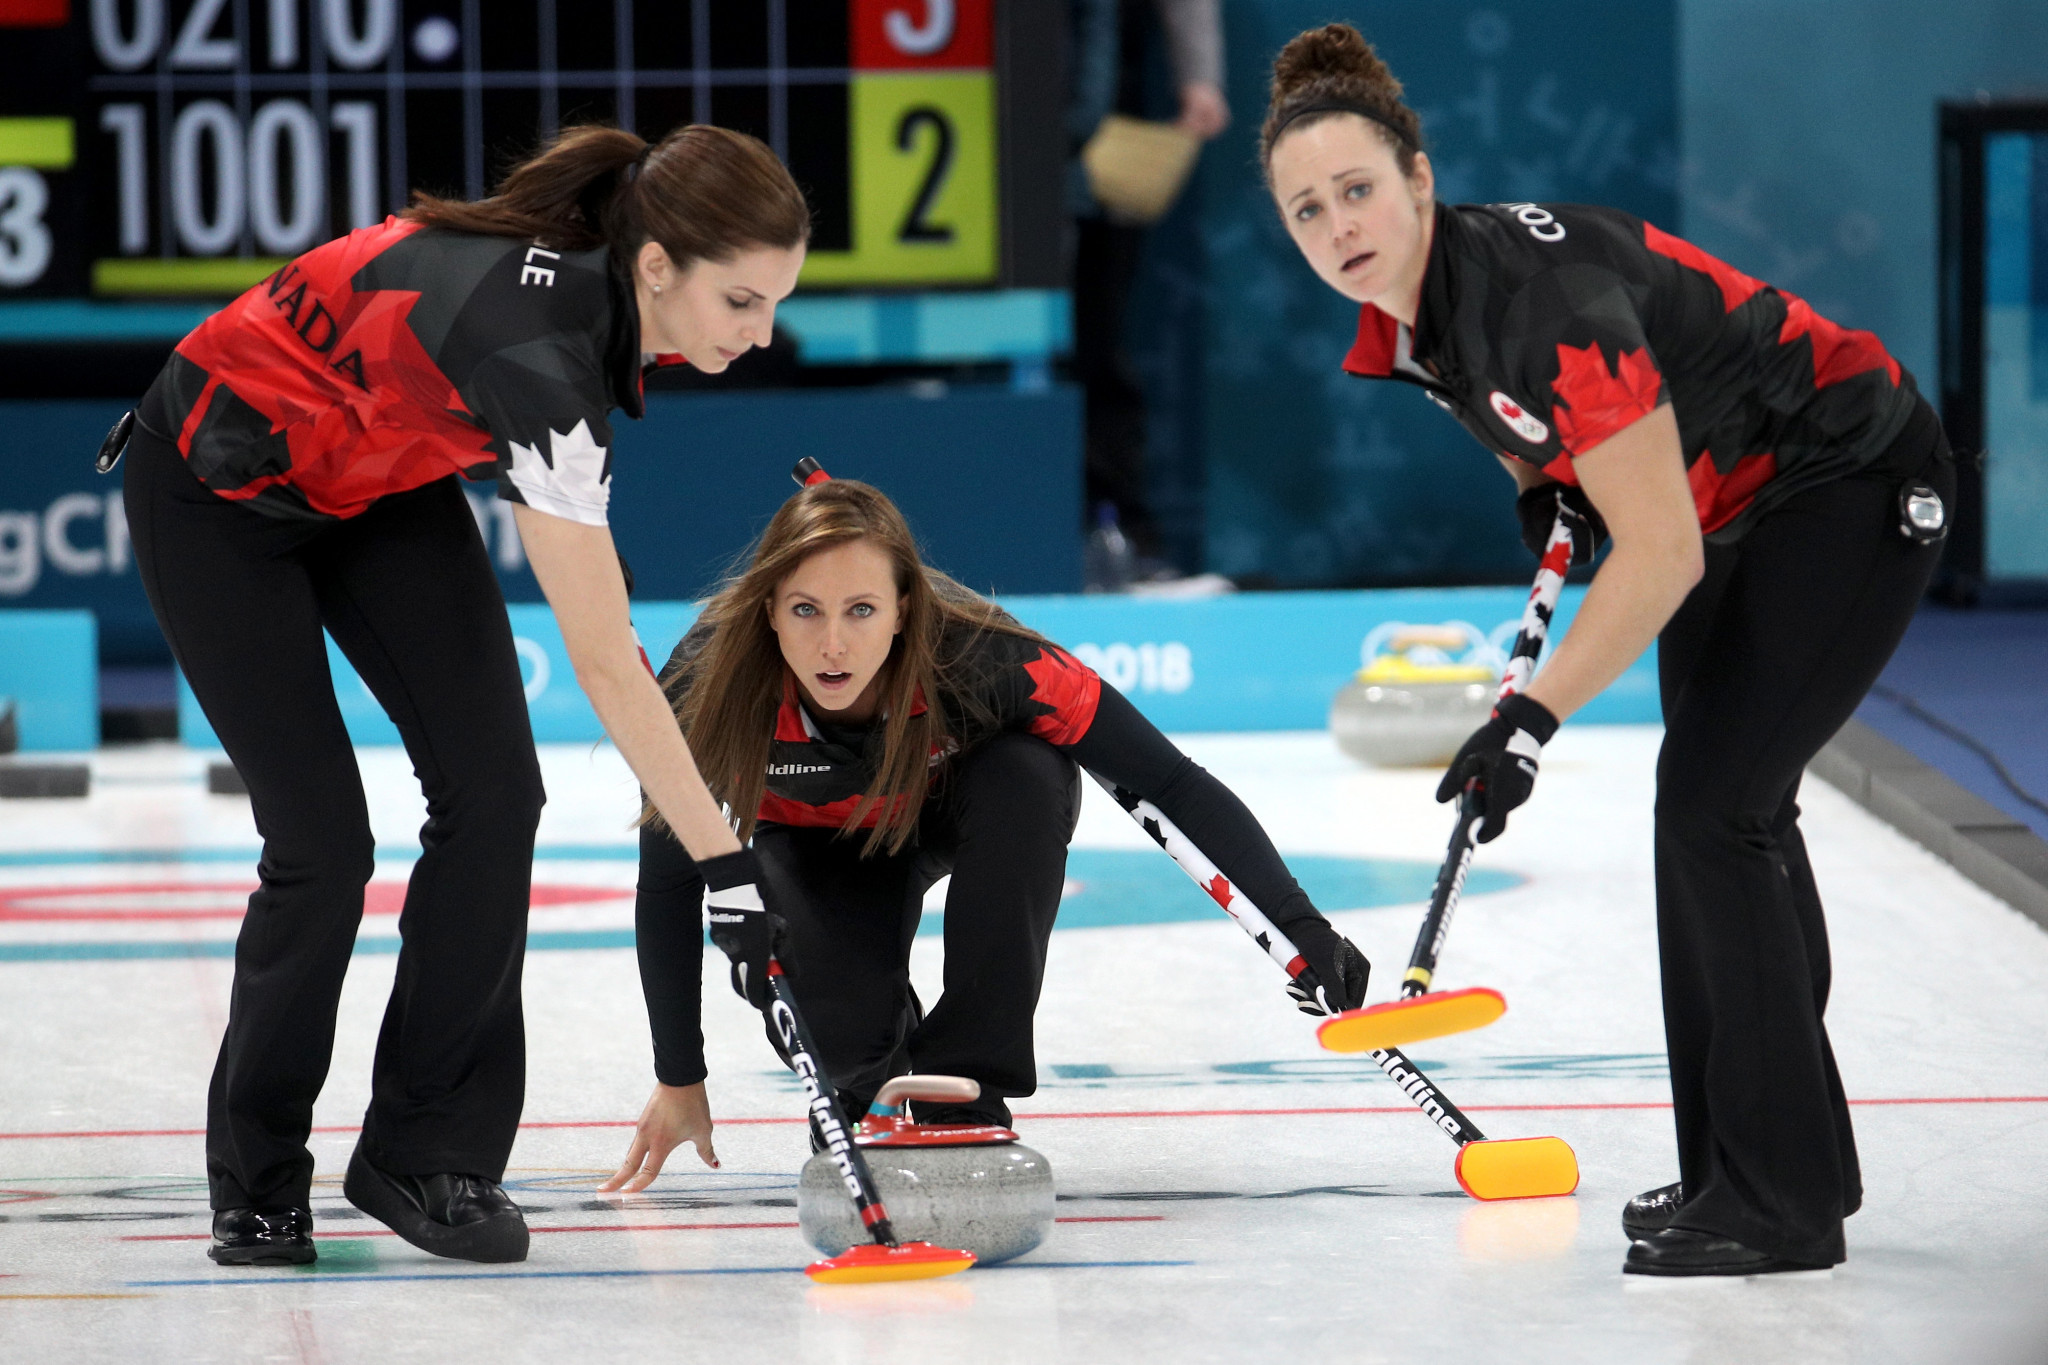 Changes announced to biggest curling teams in Canada